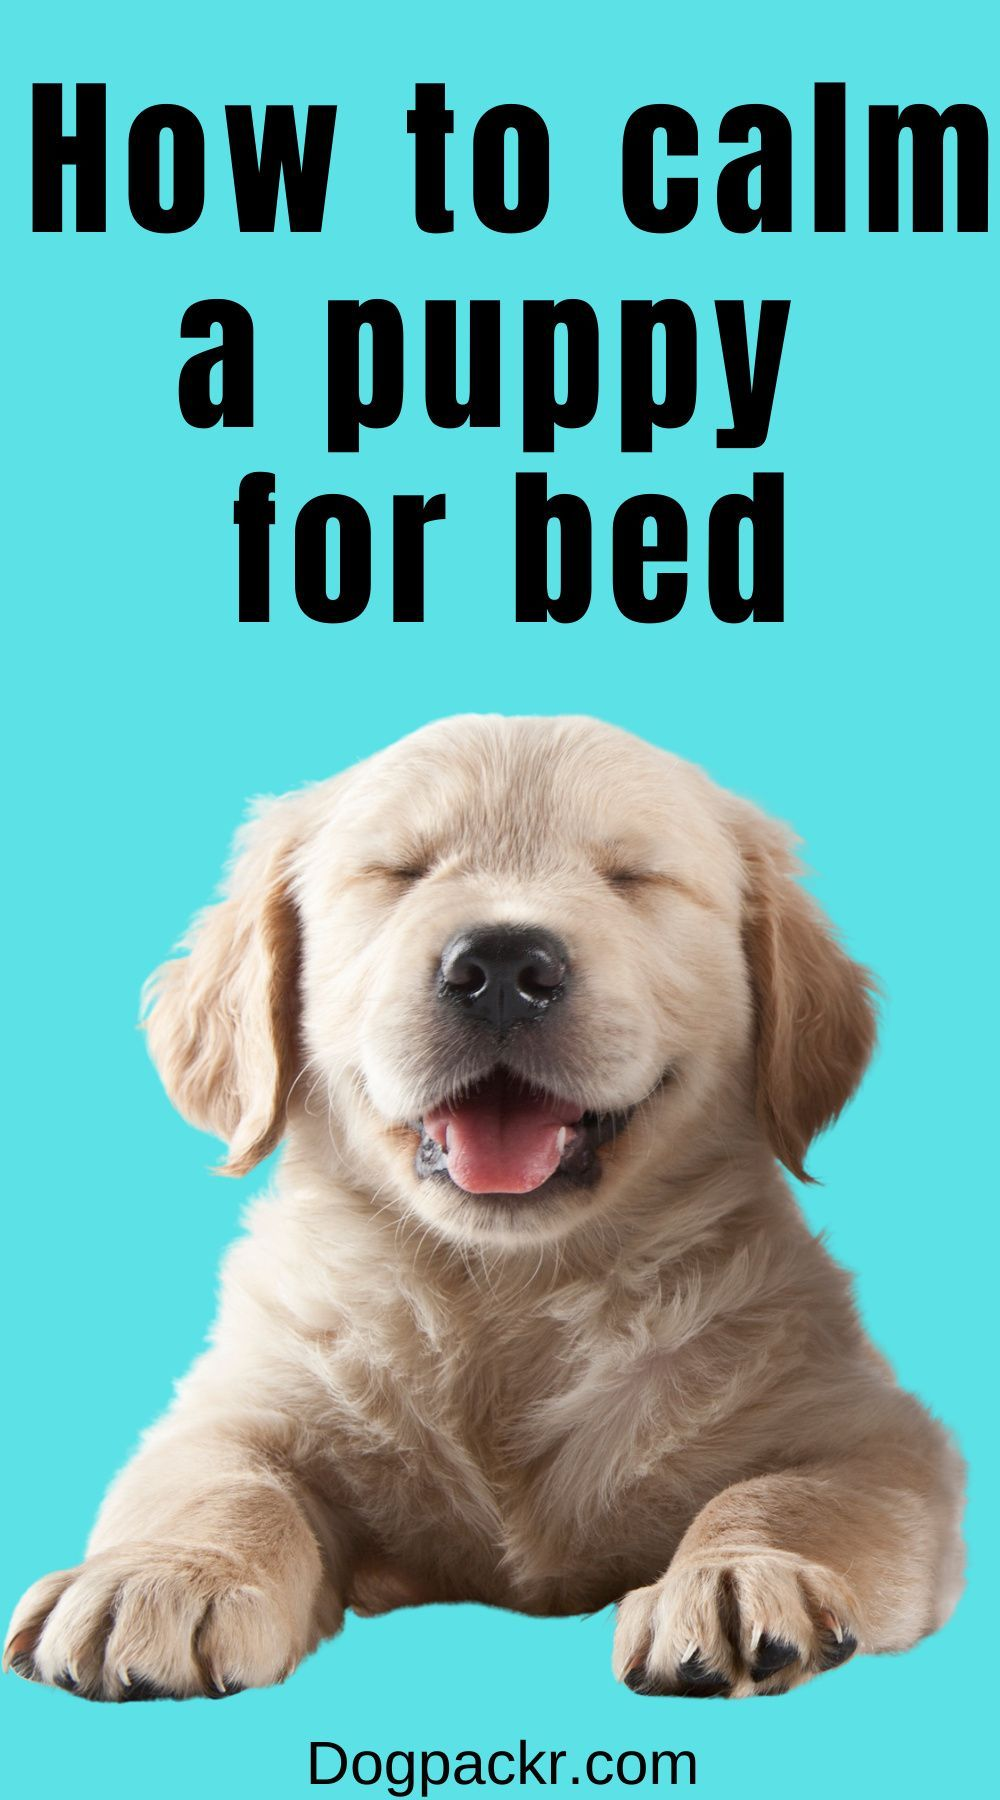 How To Calm A Puppy Down For Bed Dogpackr In 2021 Puppies Sleeping Puppies Excited Dog